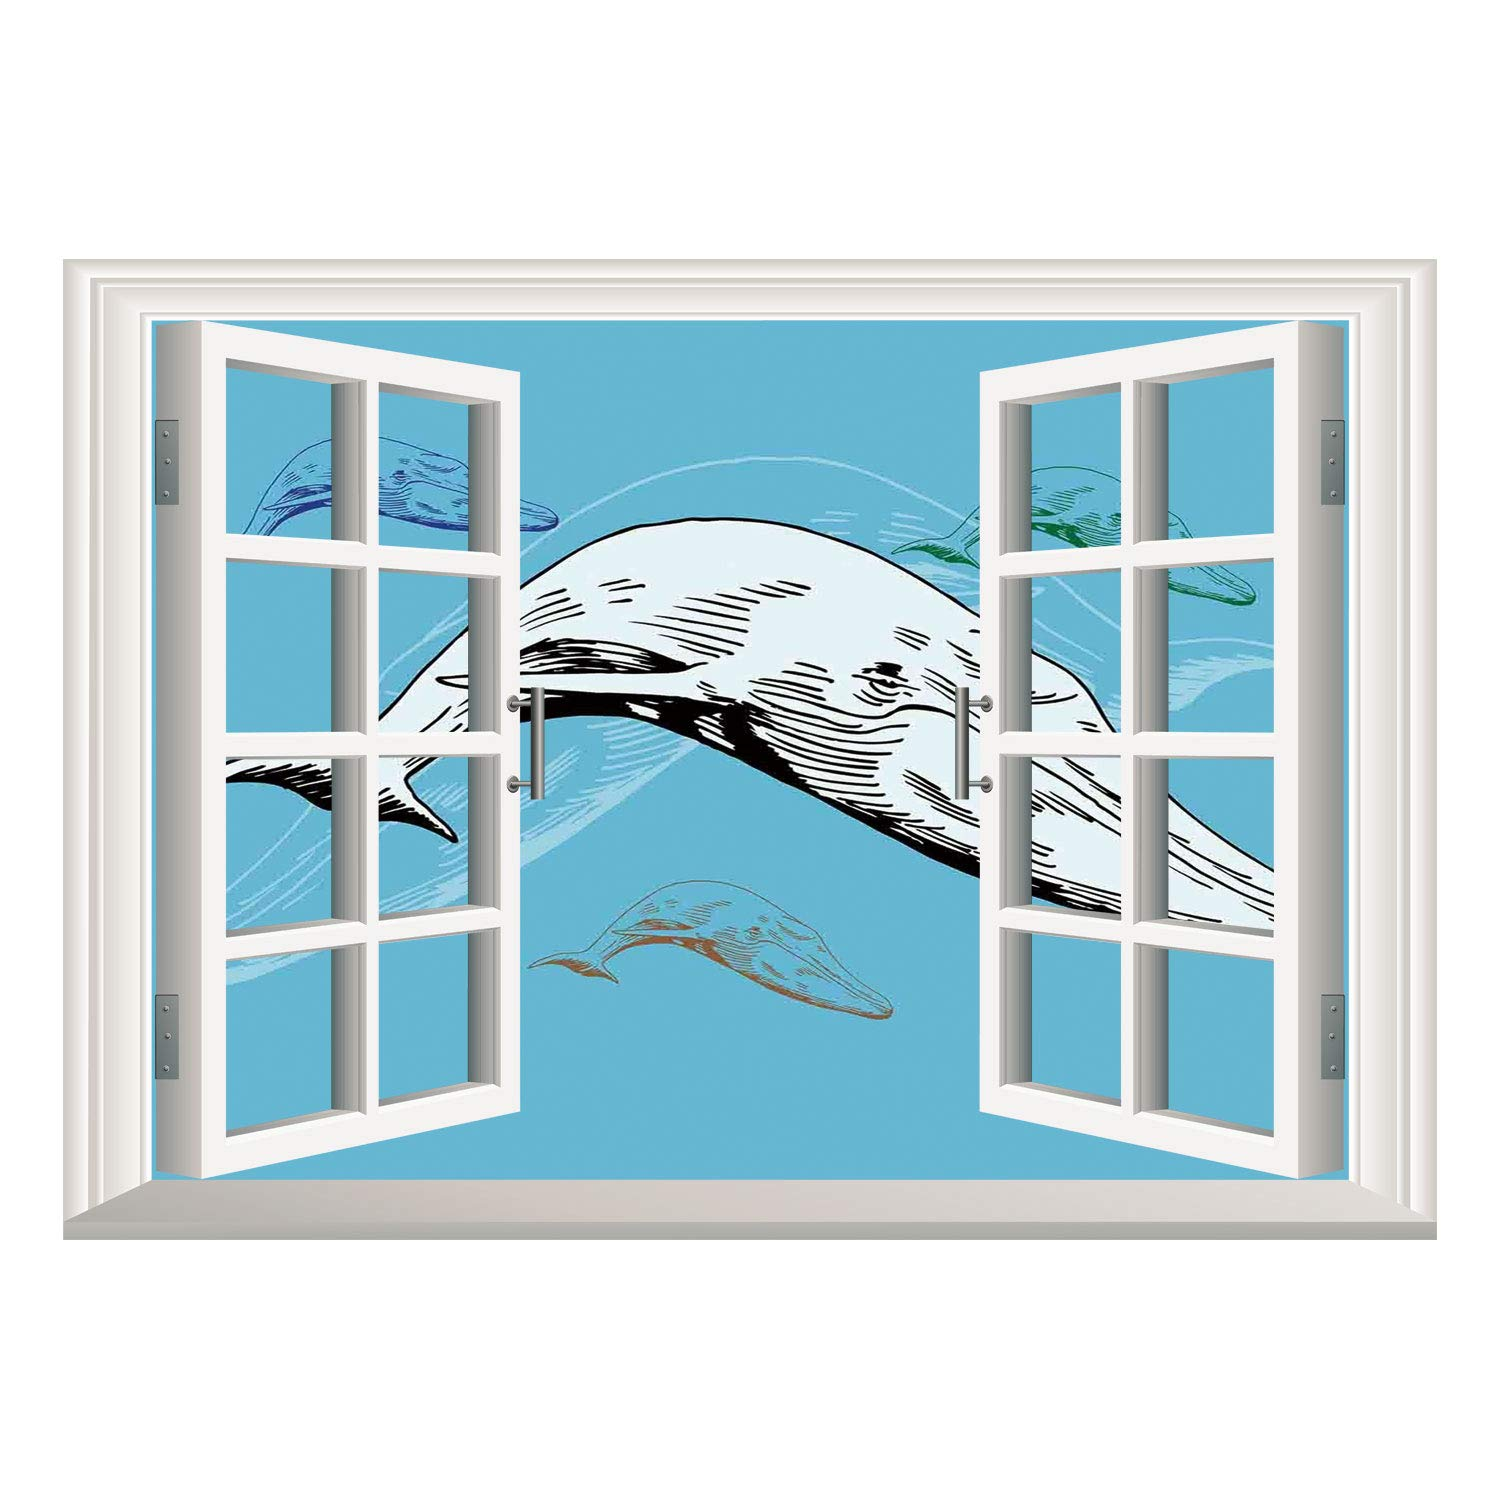 SCOCICI Window Mural Wall Sticker/Whale Decor,Shoal of Whales in Colored Swimming in Ocean Together Hand Drawing Image,White and Blue/Wall Sticker Mural